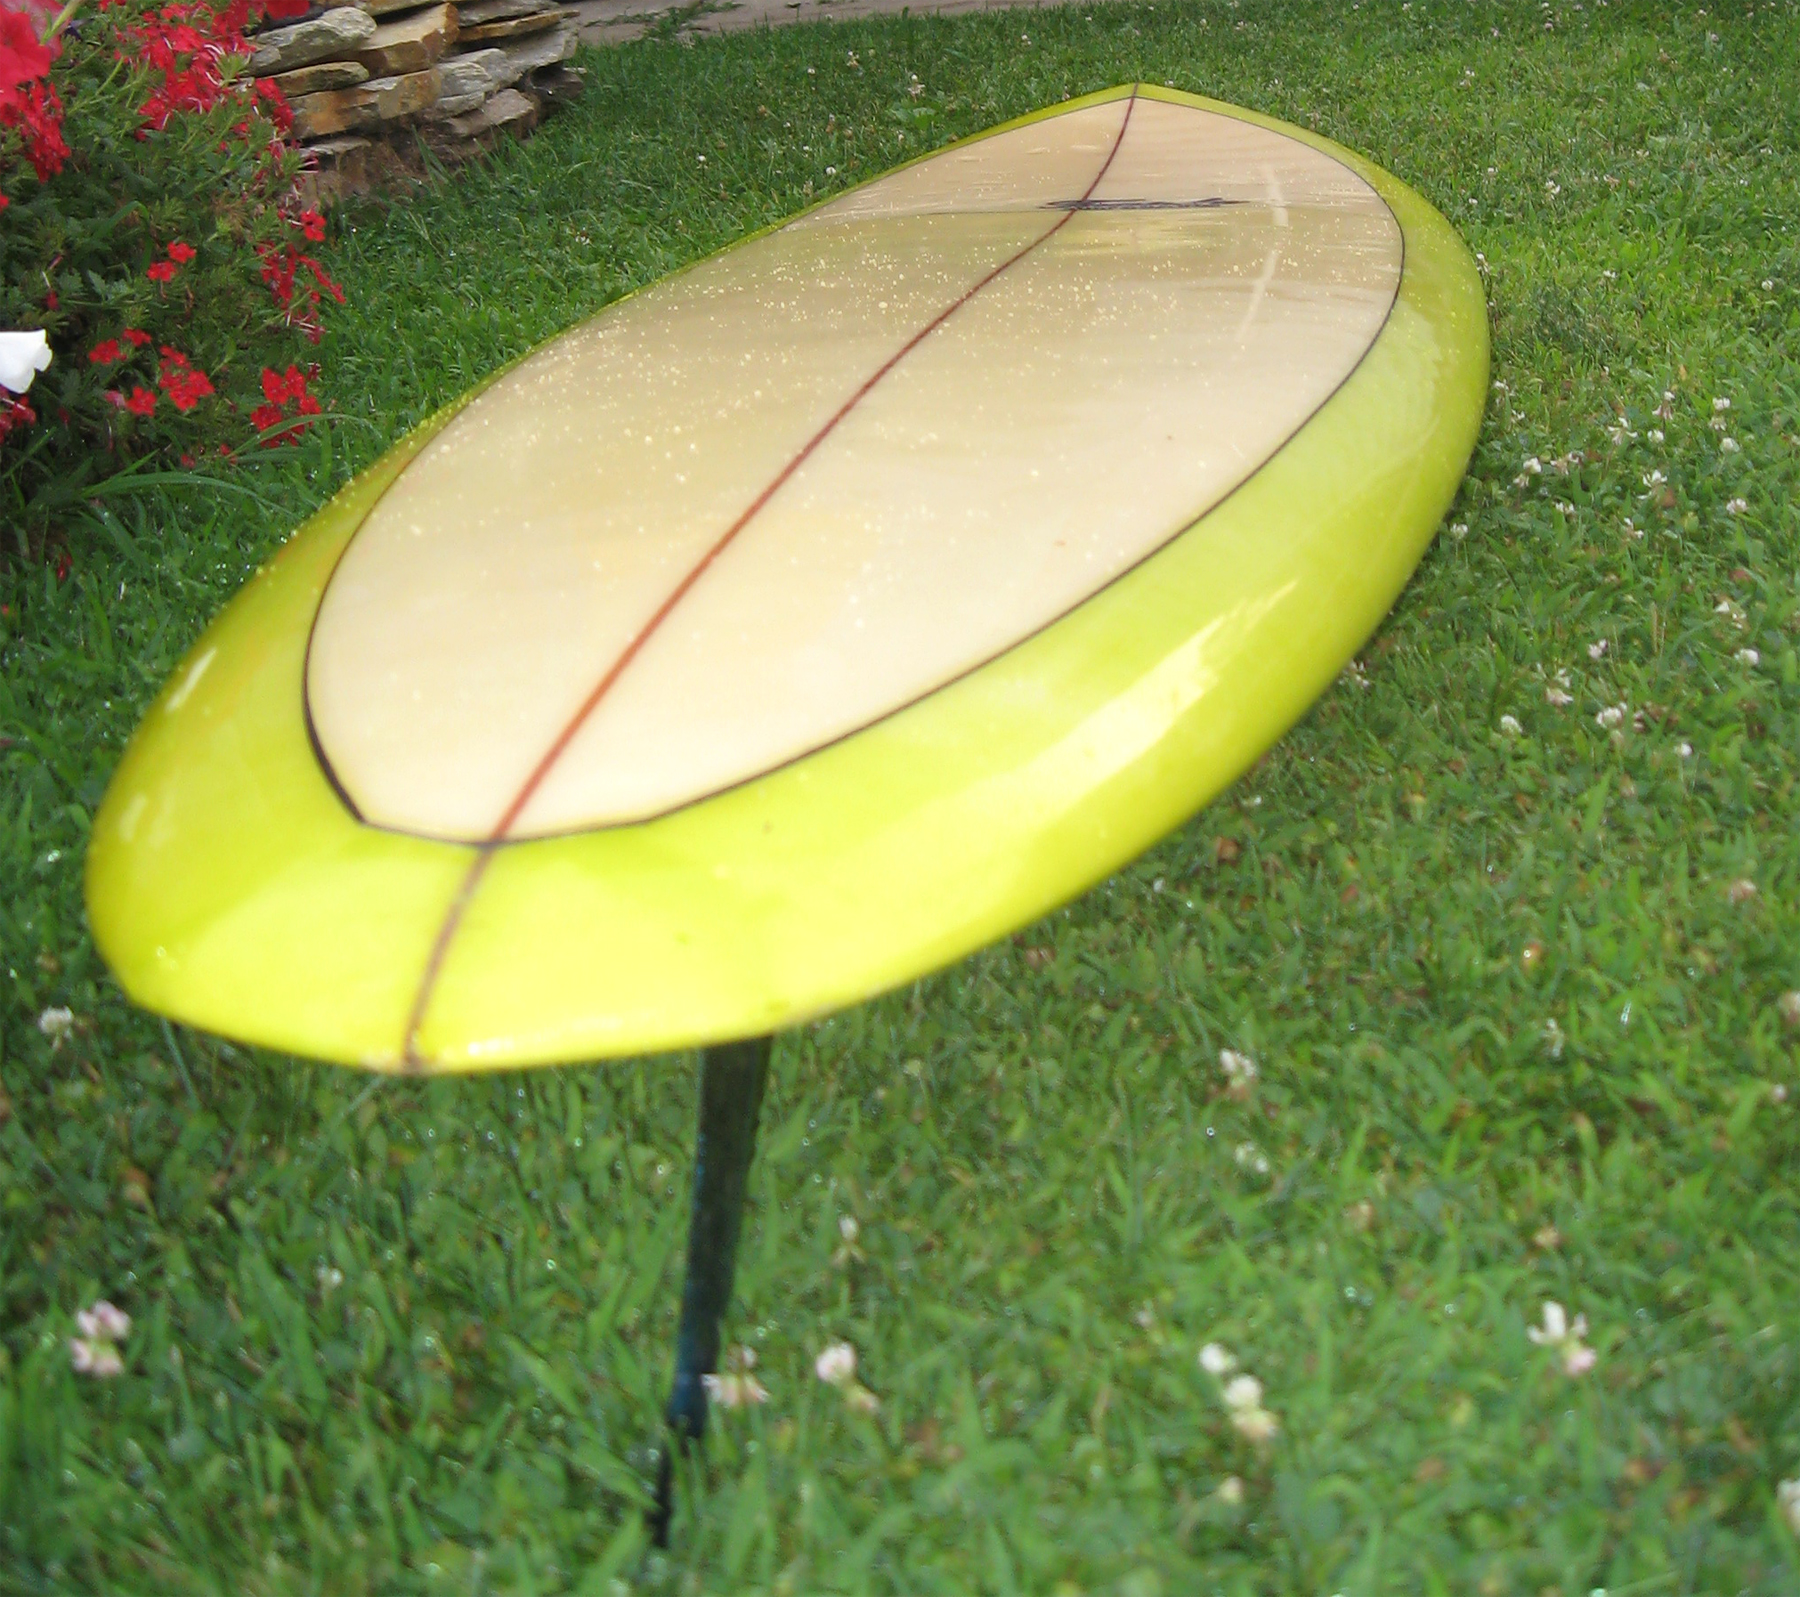 Transitional Era Ernie Tanaka Surfboard